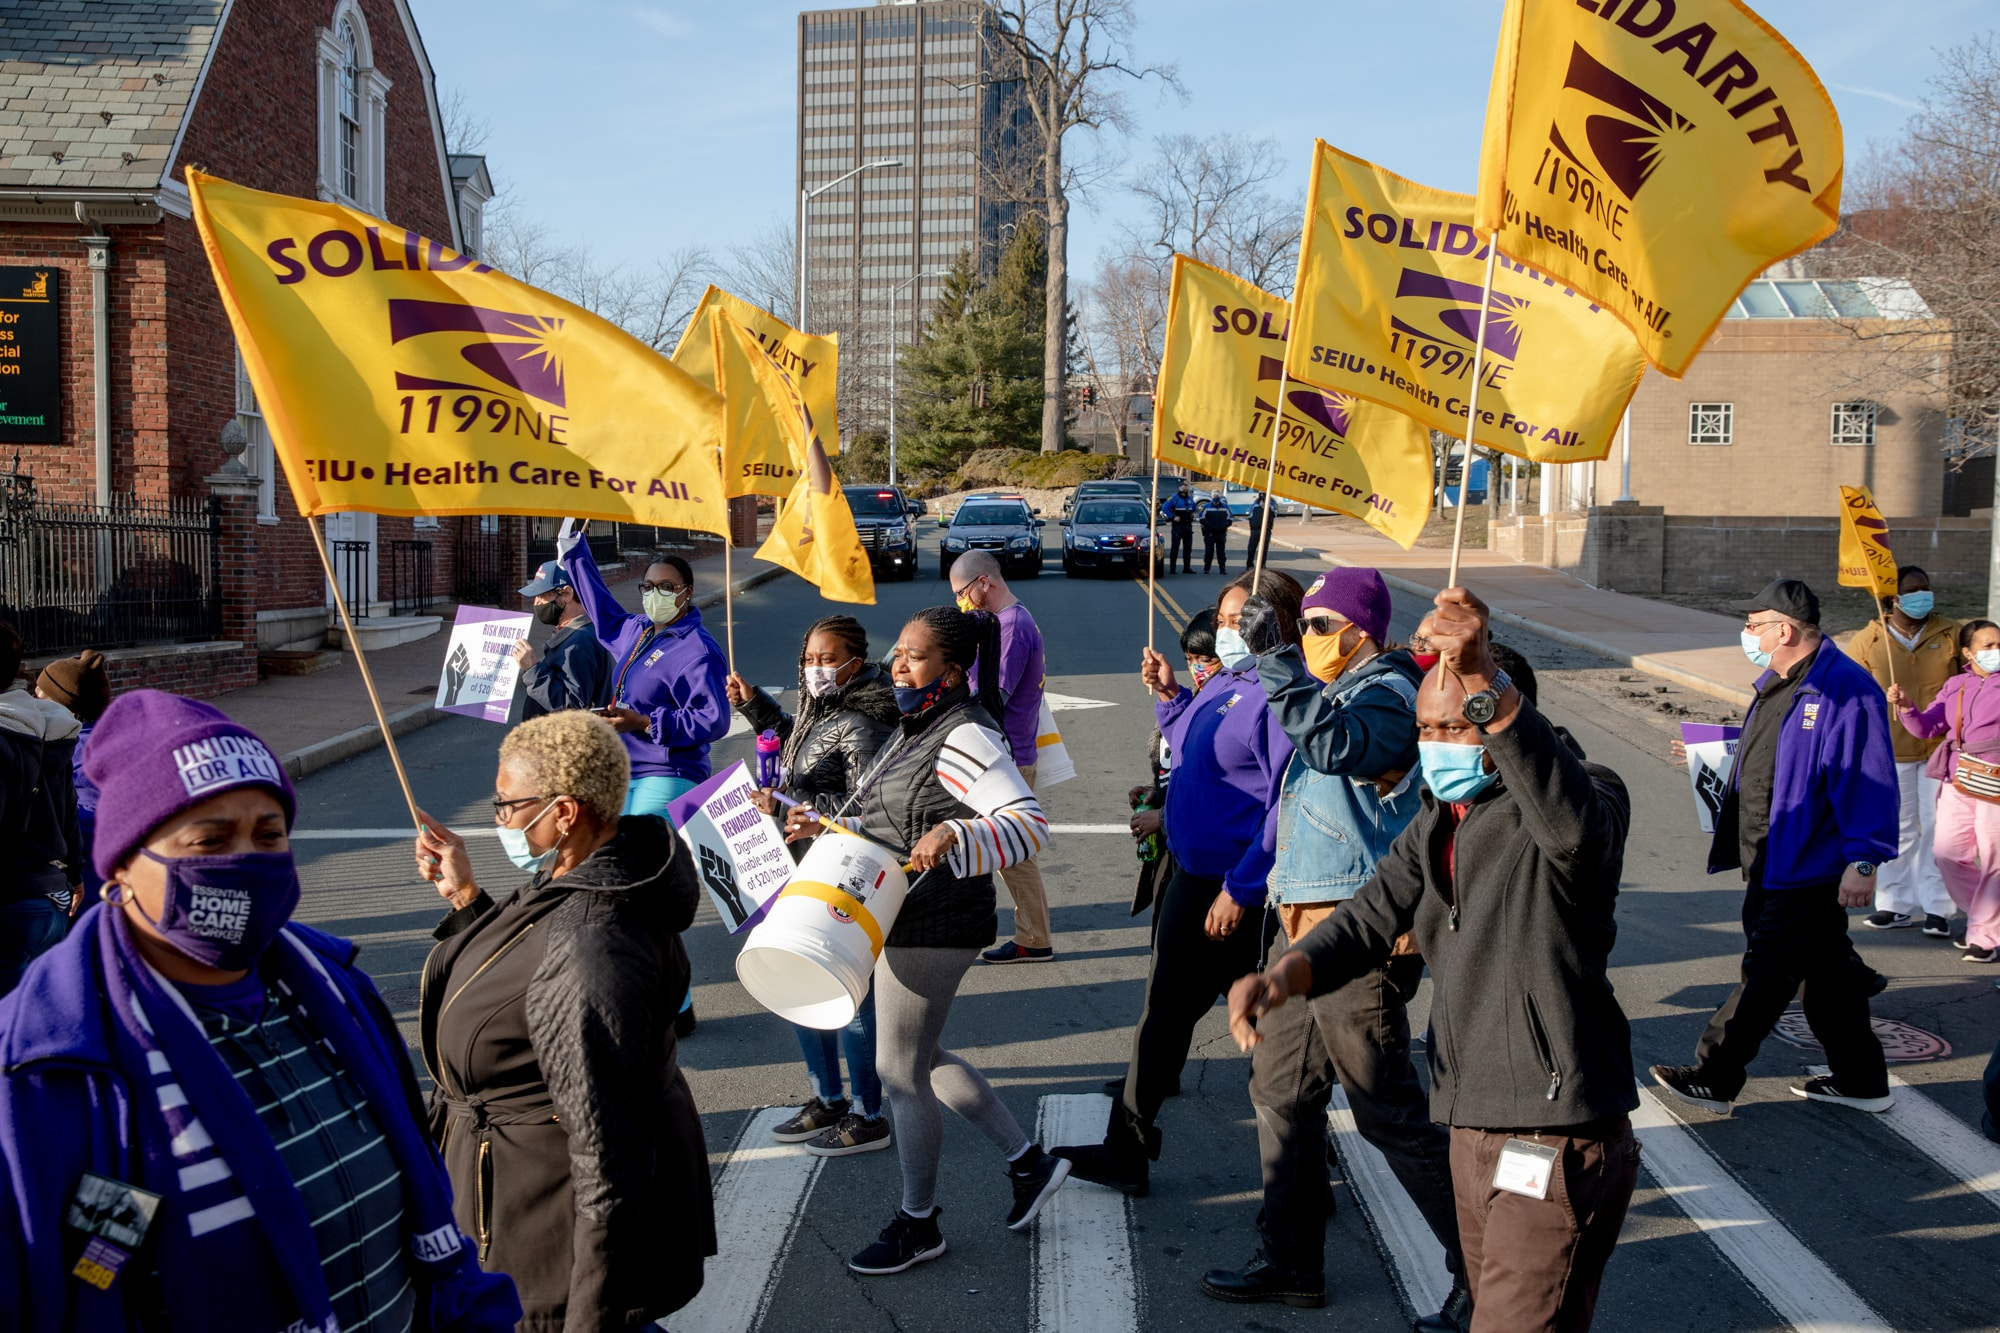 Union warns nursing homes that thousands of workers are prepared to strike